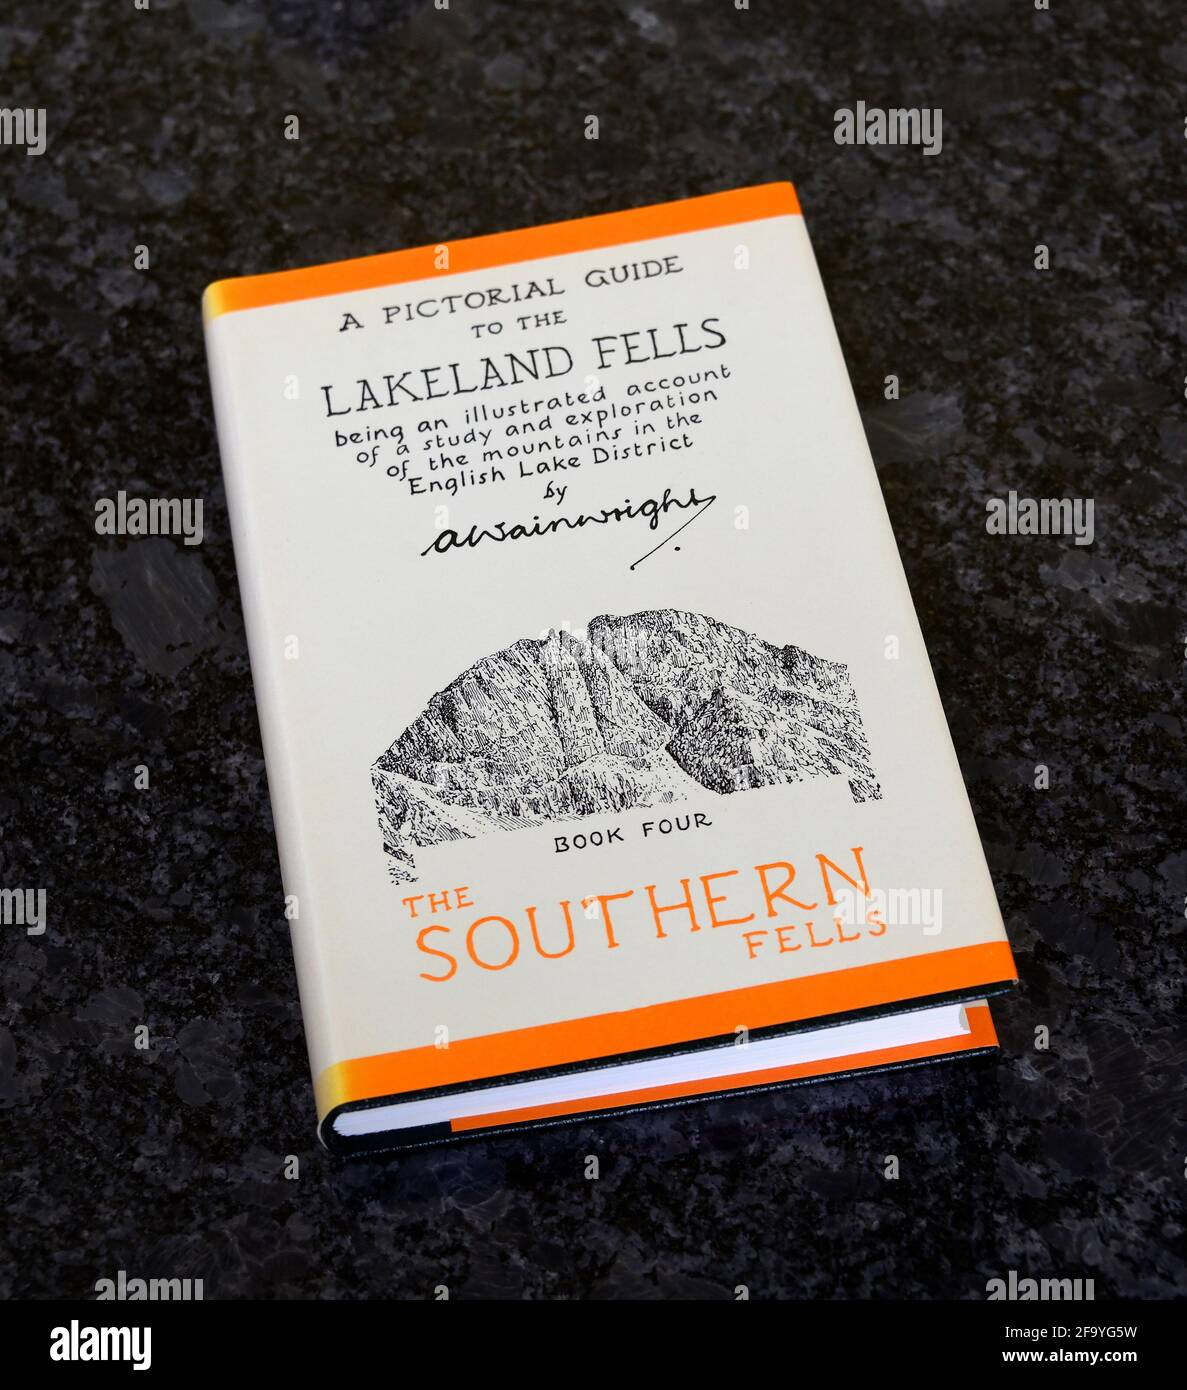 """Book. """"A Pictorial Guide to the Lakeland Fells. The Southern Fells"""" by Alfred Wainwright. Stock Photo"""